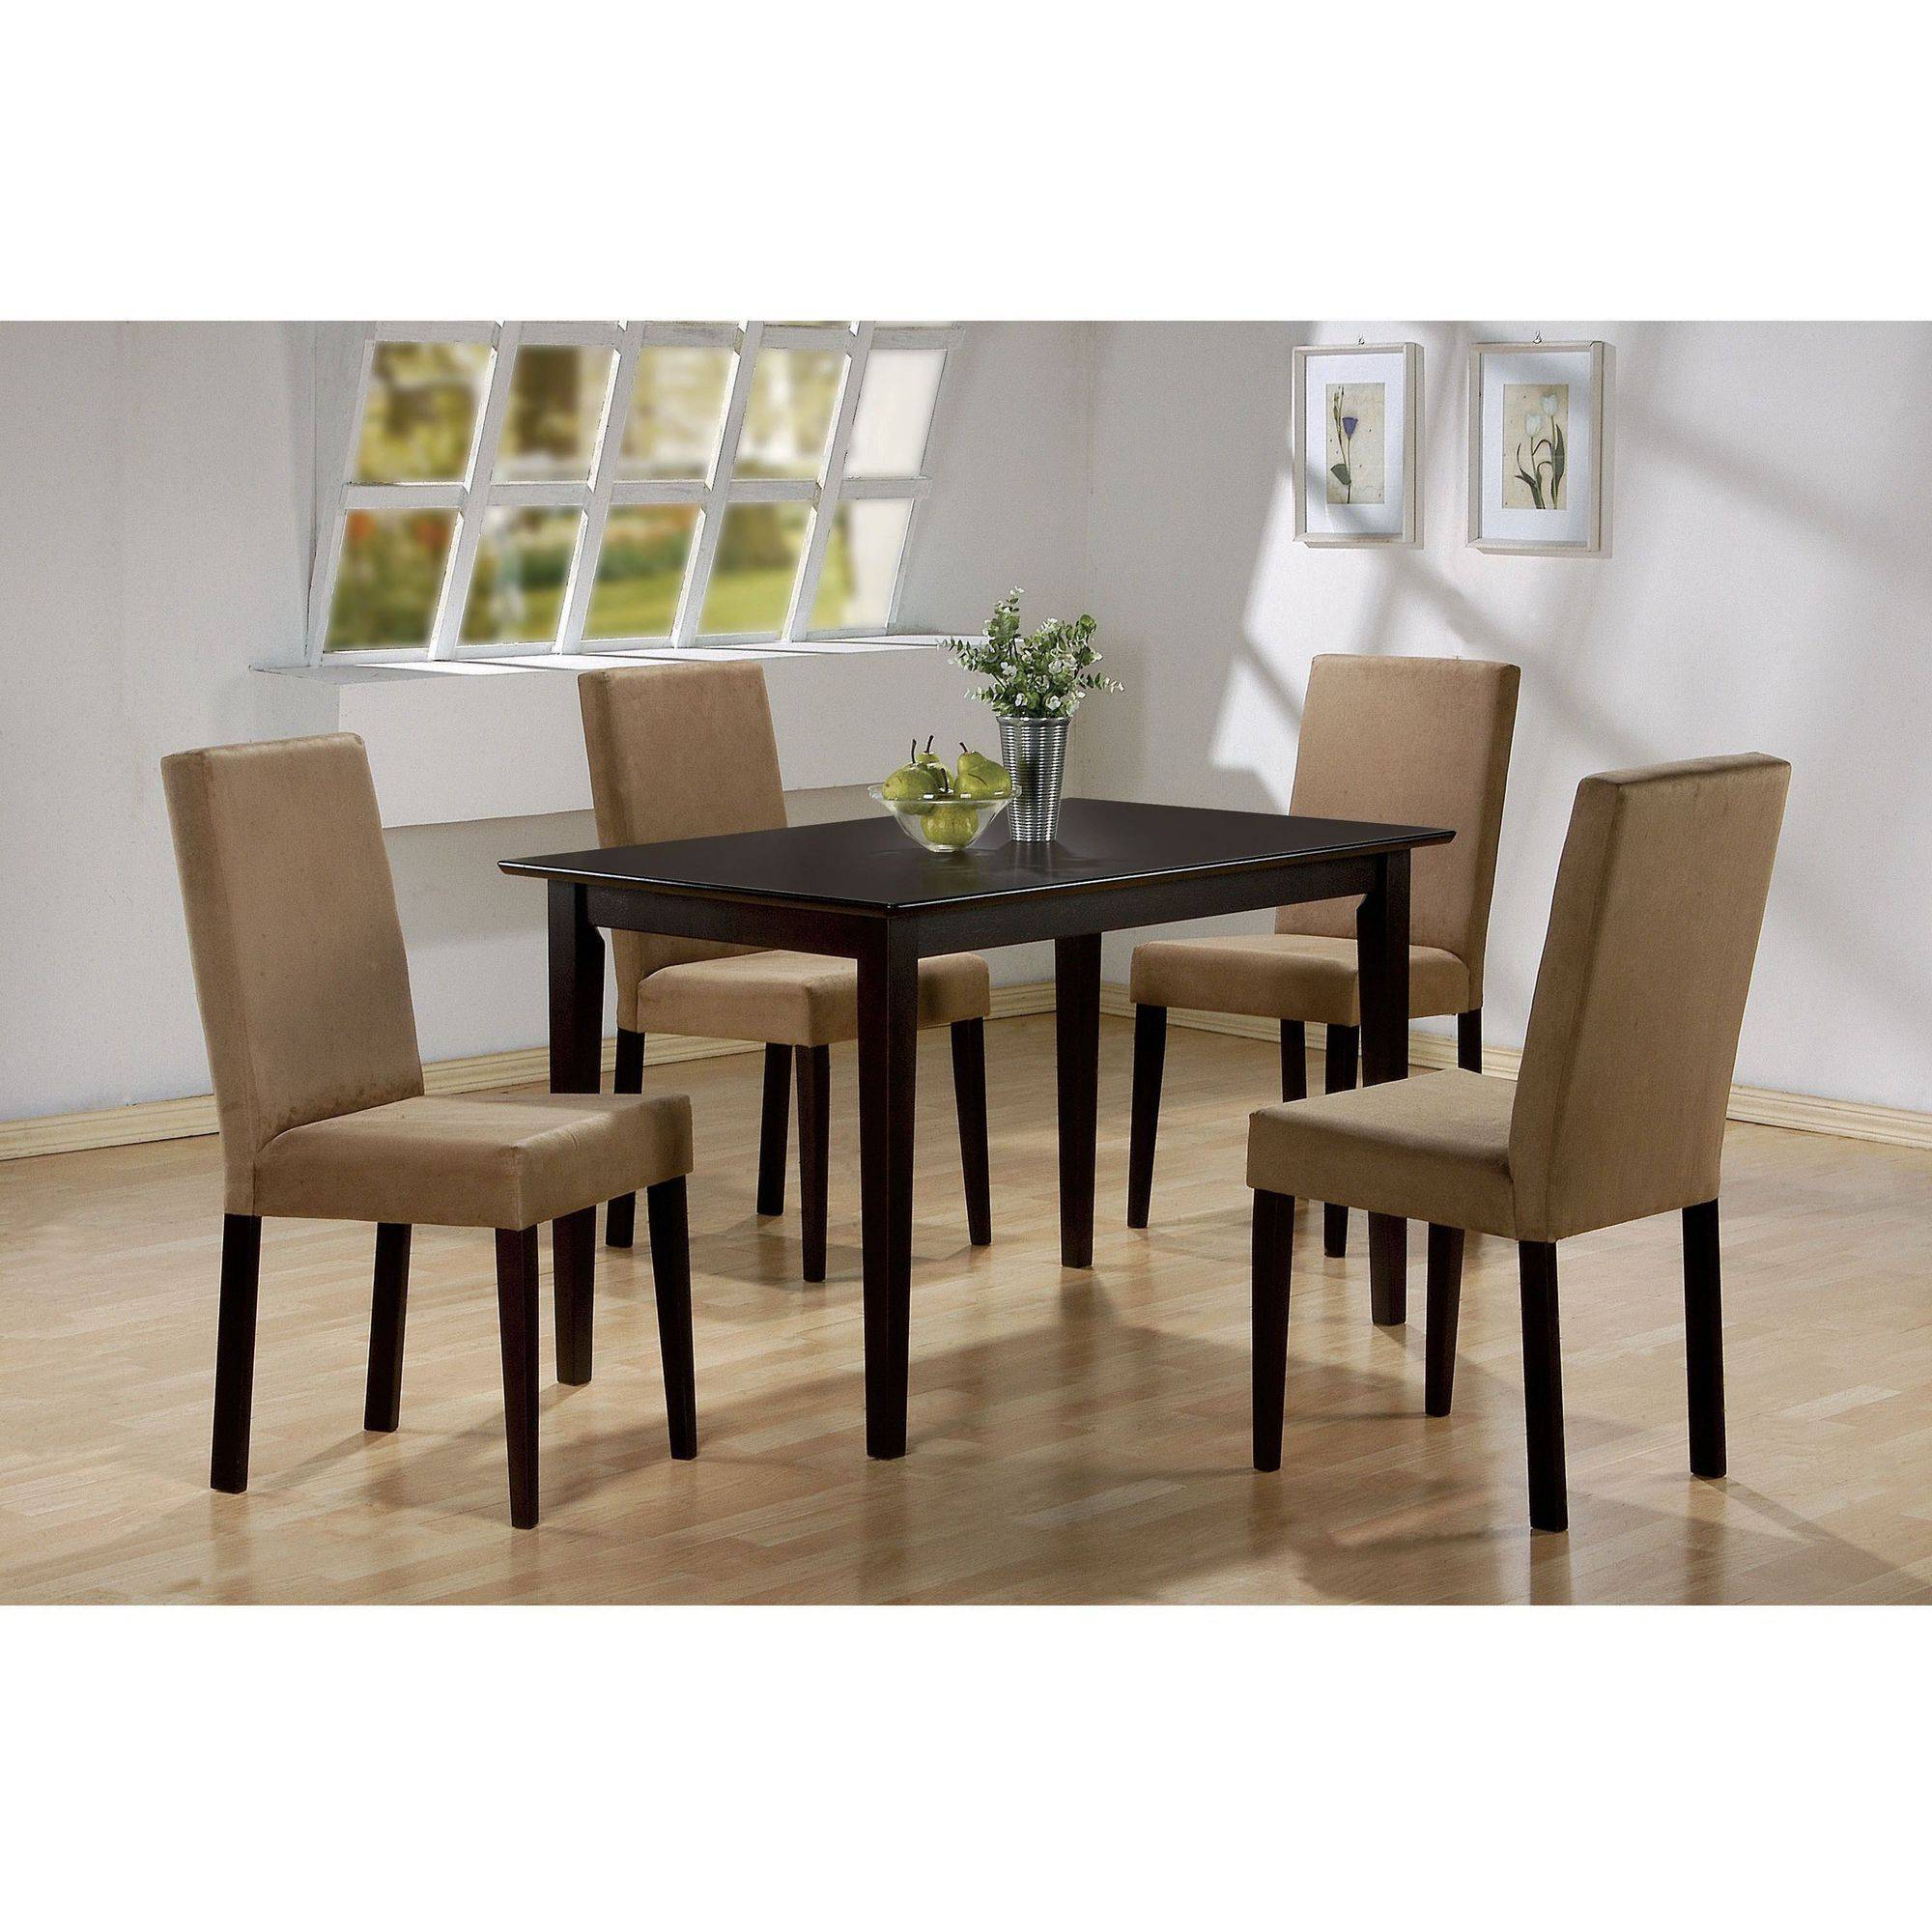 Coaster Company Clayton Dining Table Chairs Sold Separately - Walmart.com  sc 1 st  Walmart & Coaster Company Clayton Dining Table Chairs Sold Separately ...